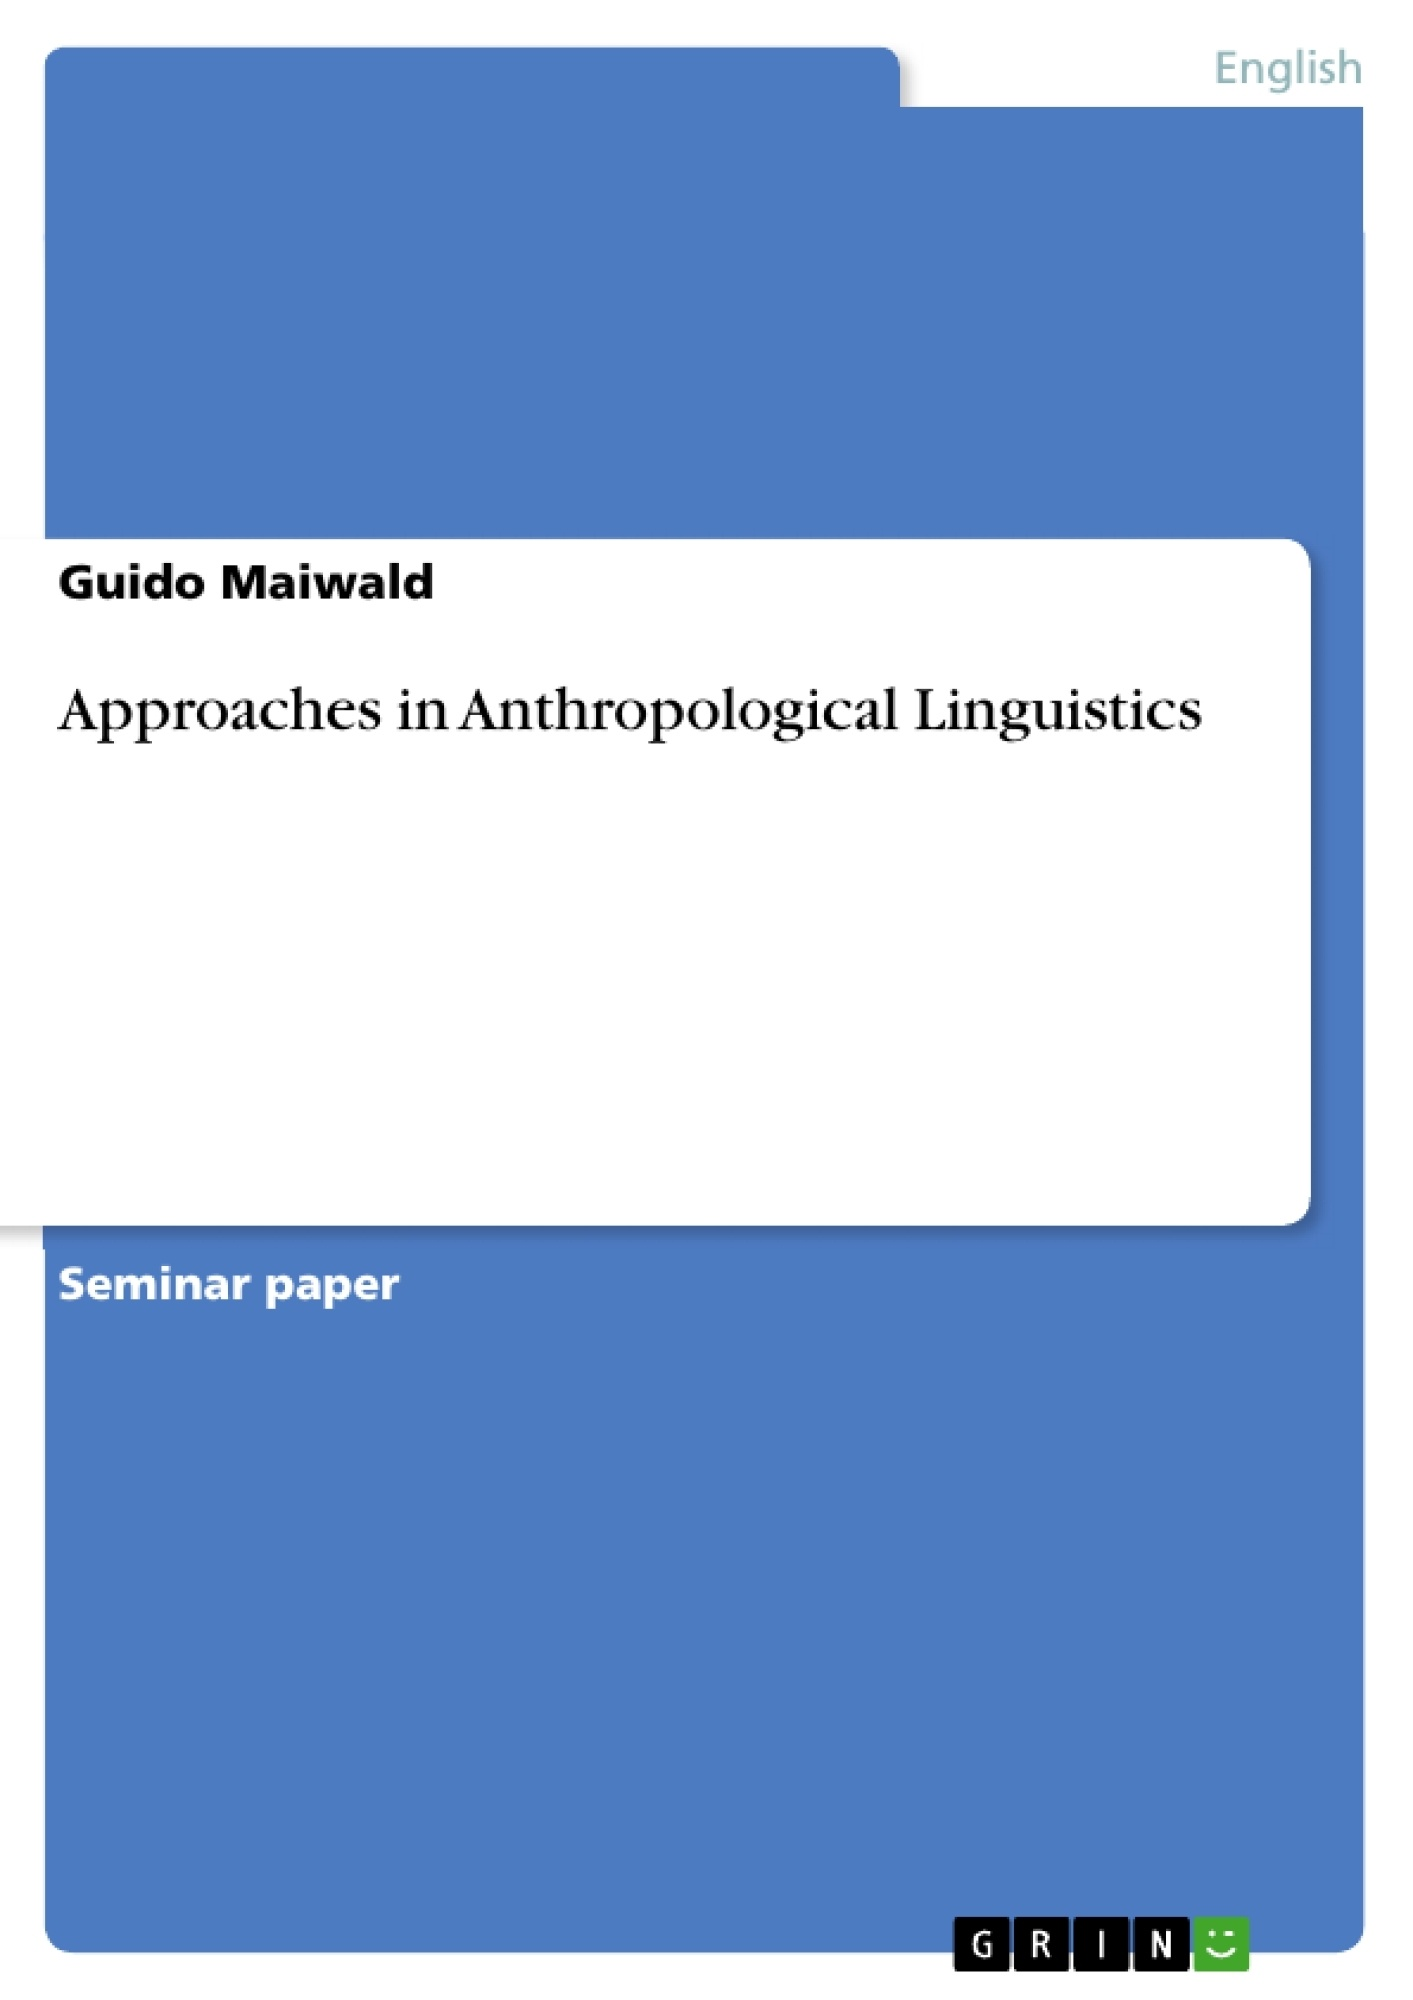 Title: Approaches in Anthropological Linguistics